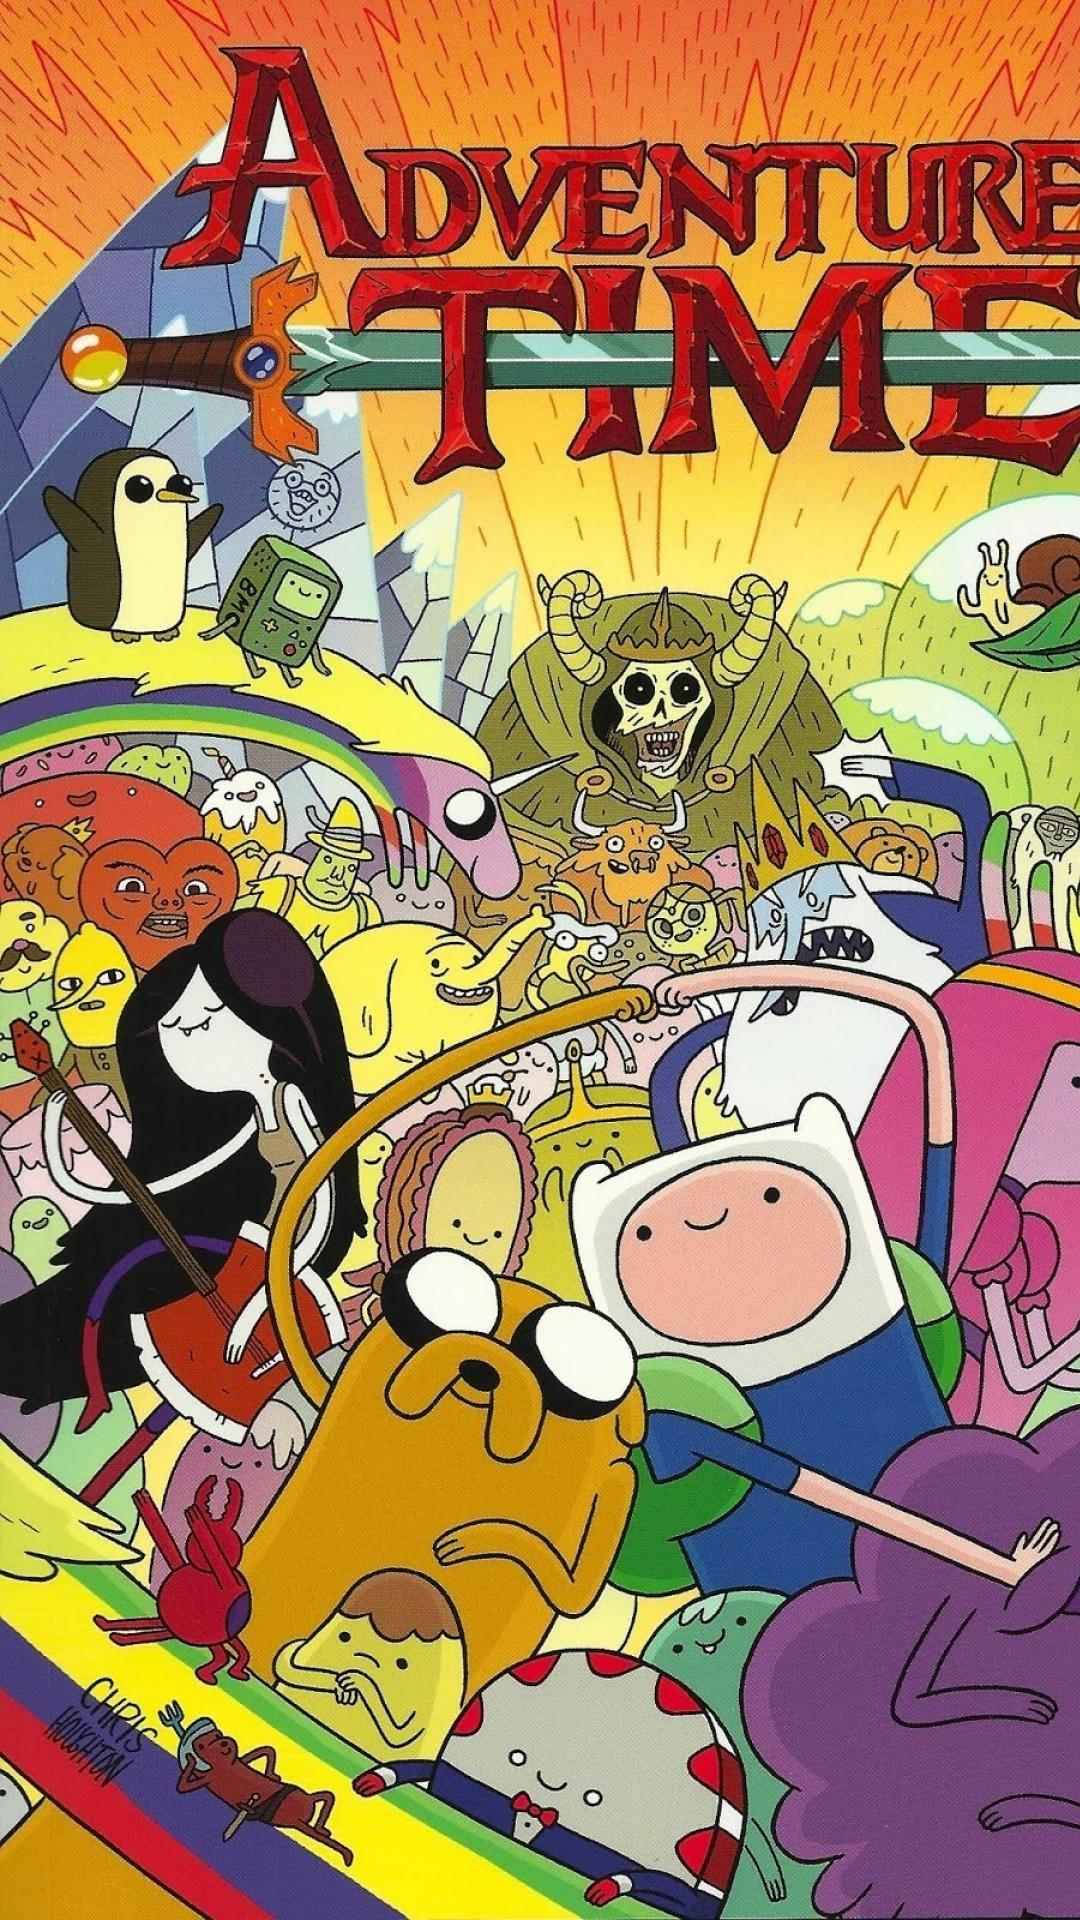 Adventure Time Wallpaper Iphone , HD Wallpaper & Backgrounds